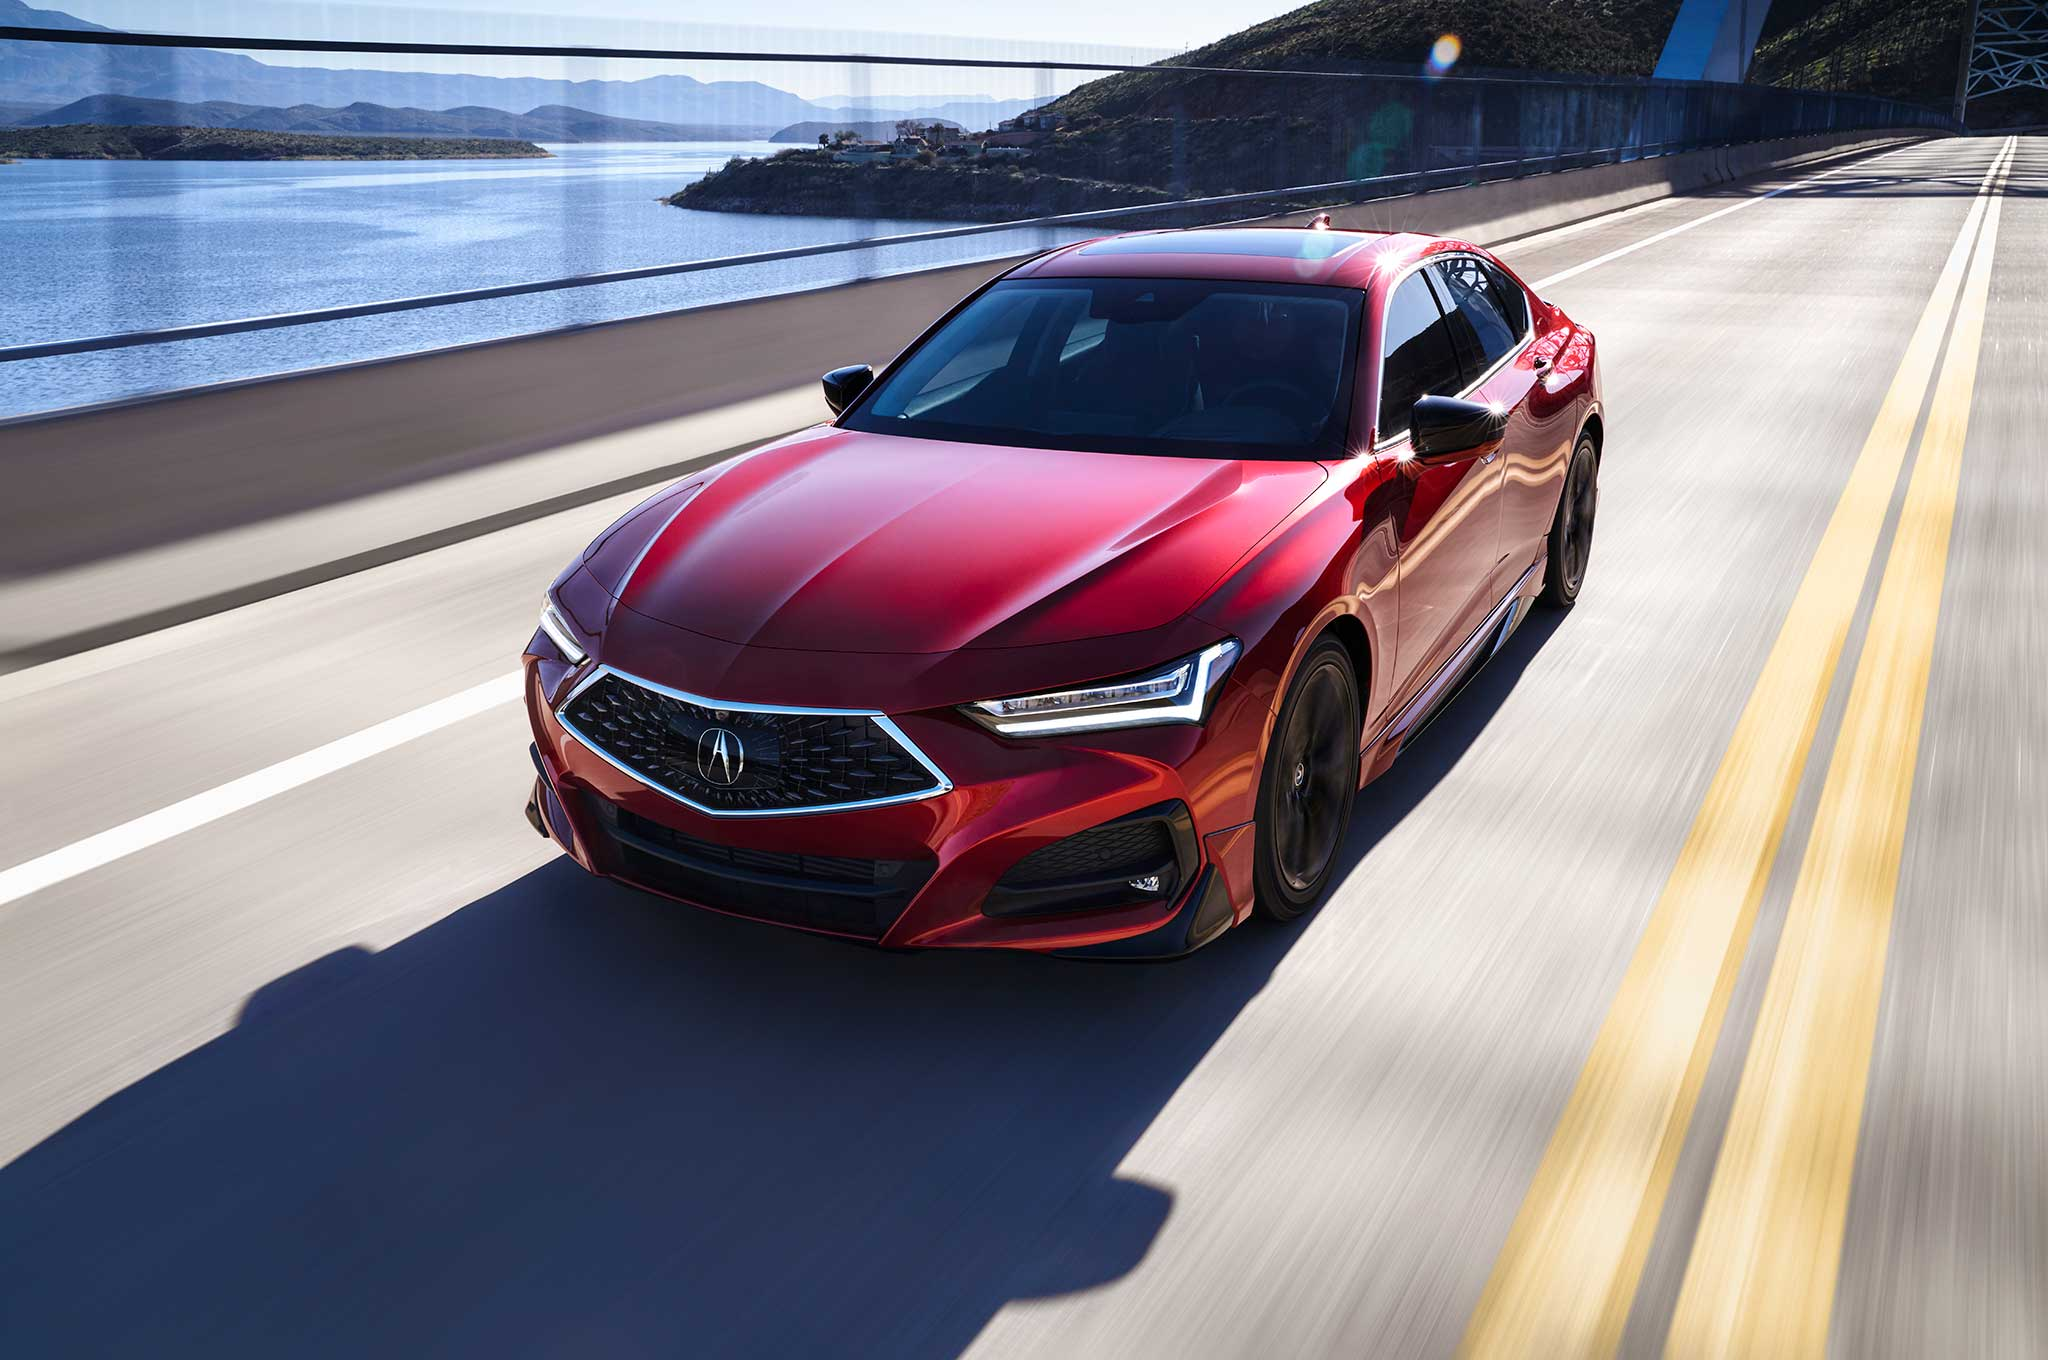 2021 Acura Tlx And A Return To Form With Type S Performance